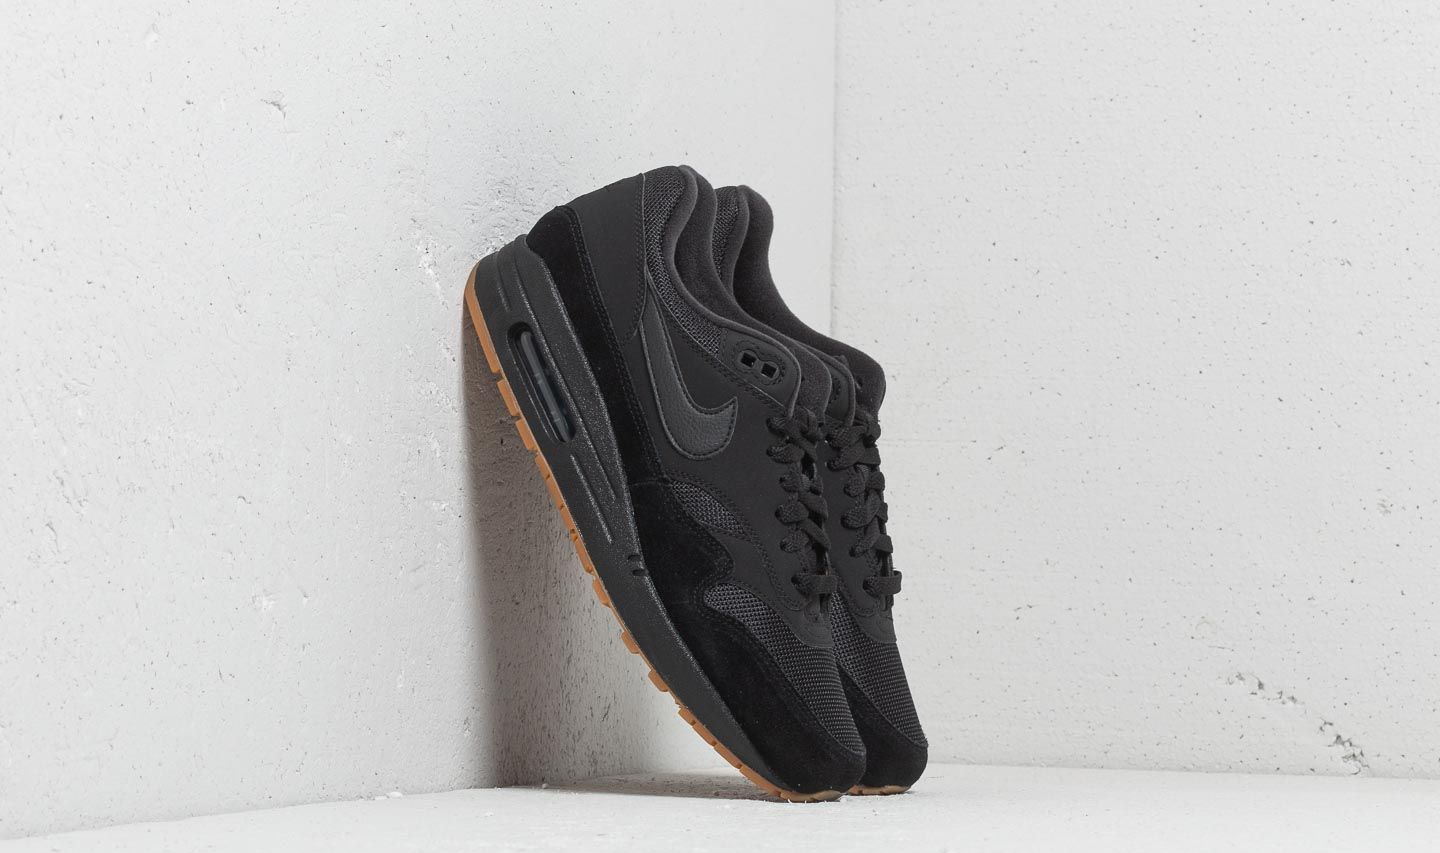 low priced 1fc2e 61b54 Nike Air Max 1 Black  Black-Black-Gum Med Brown. 1